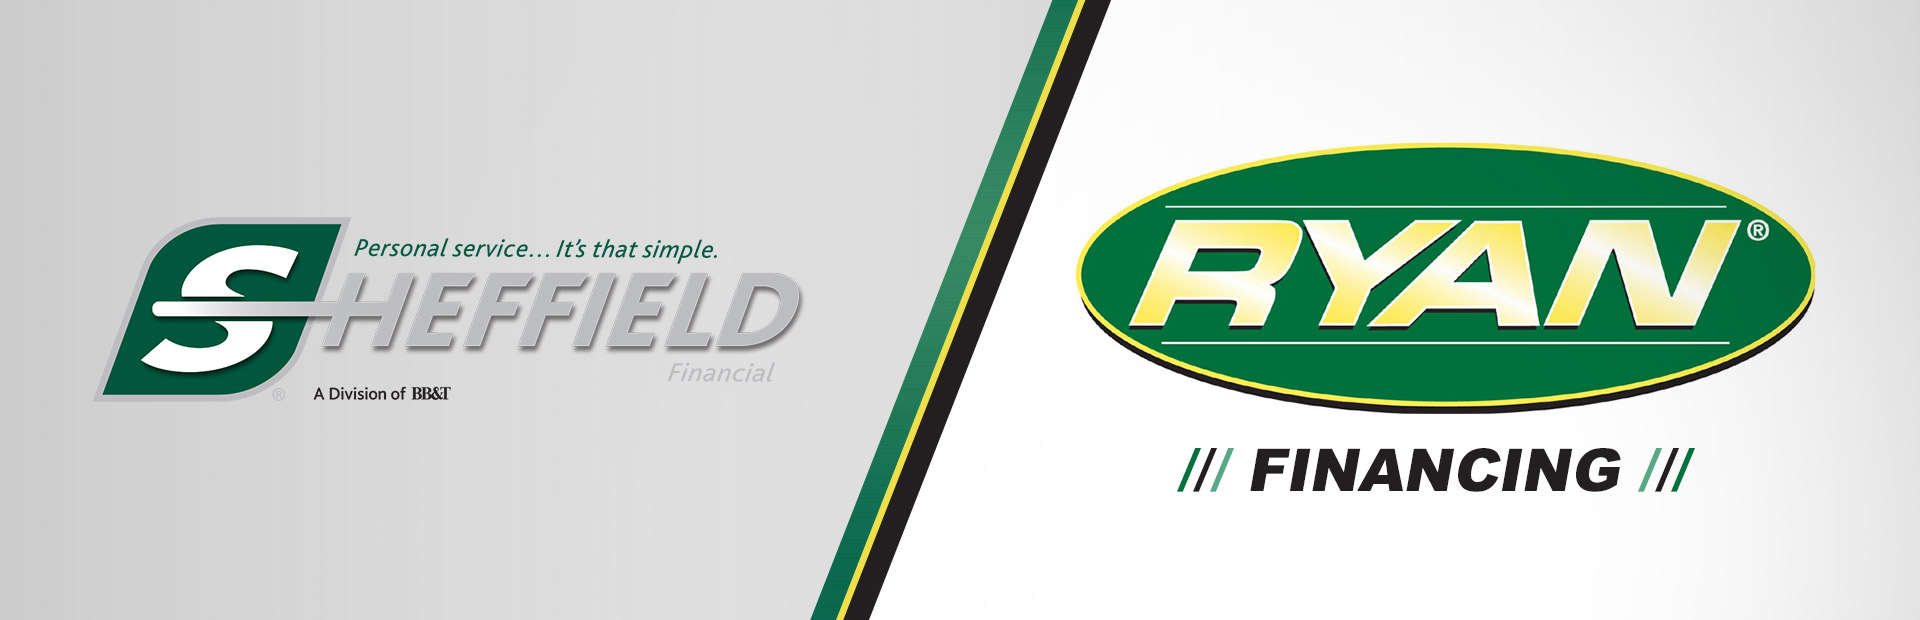 Ryan: Retail Financing From Sheffield